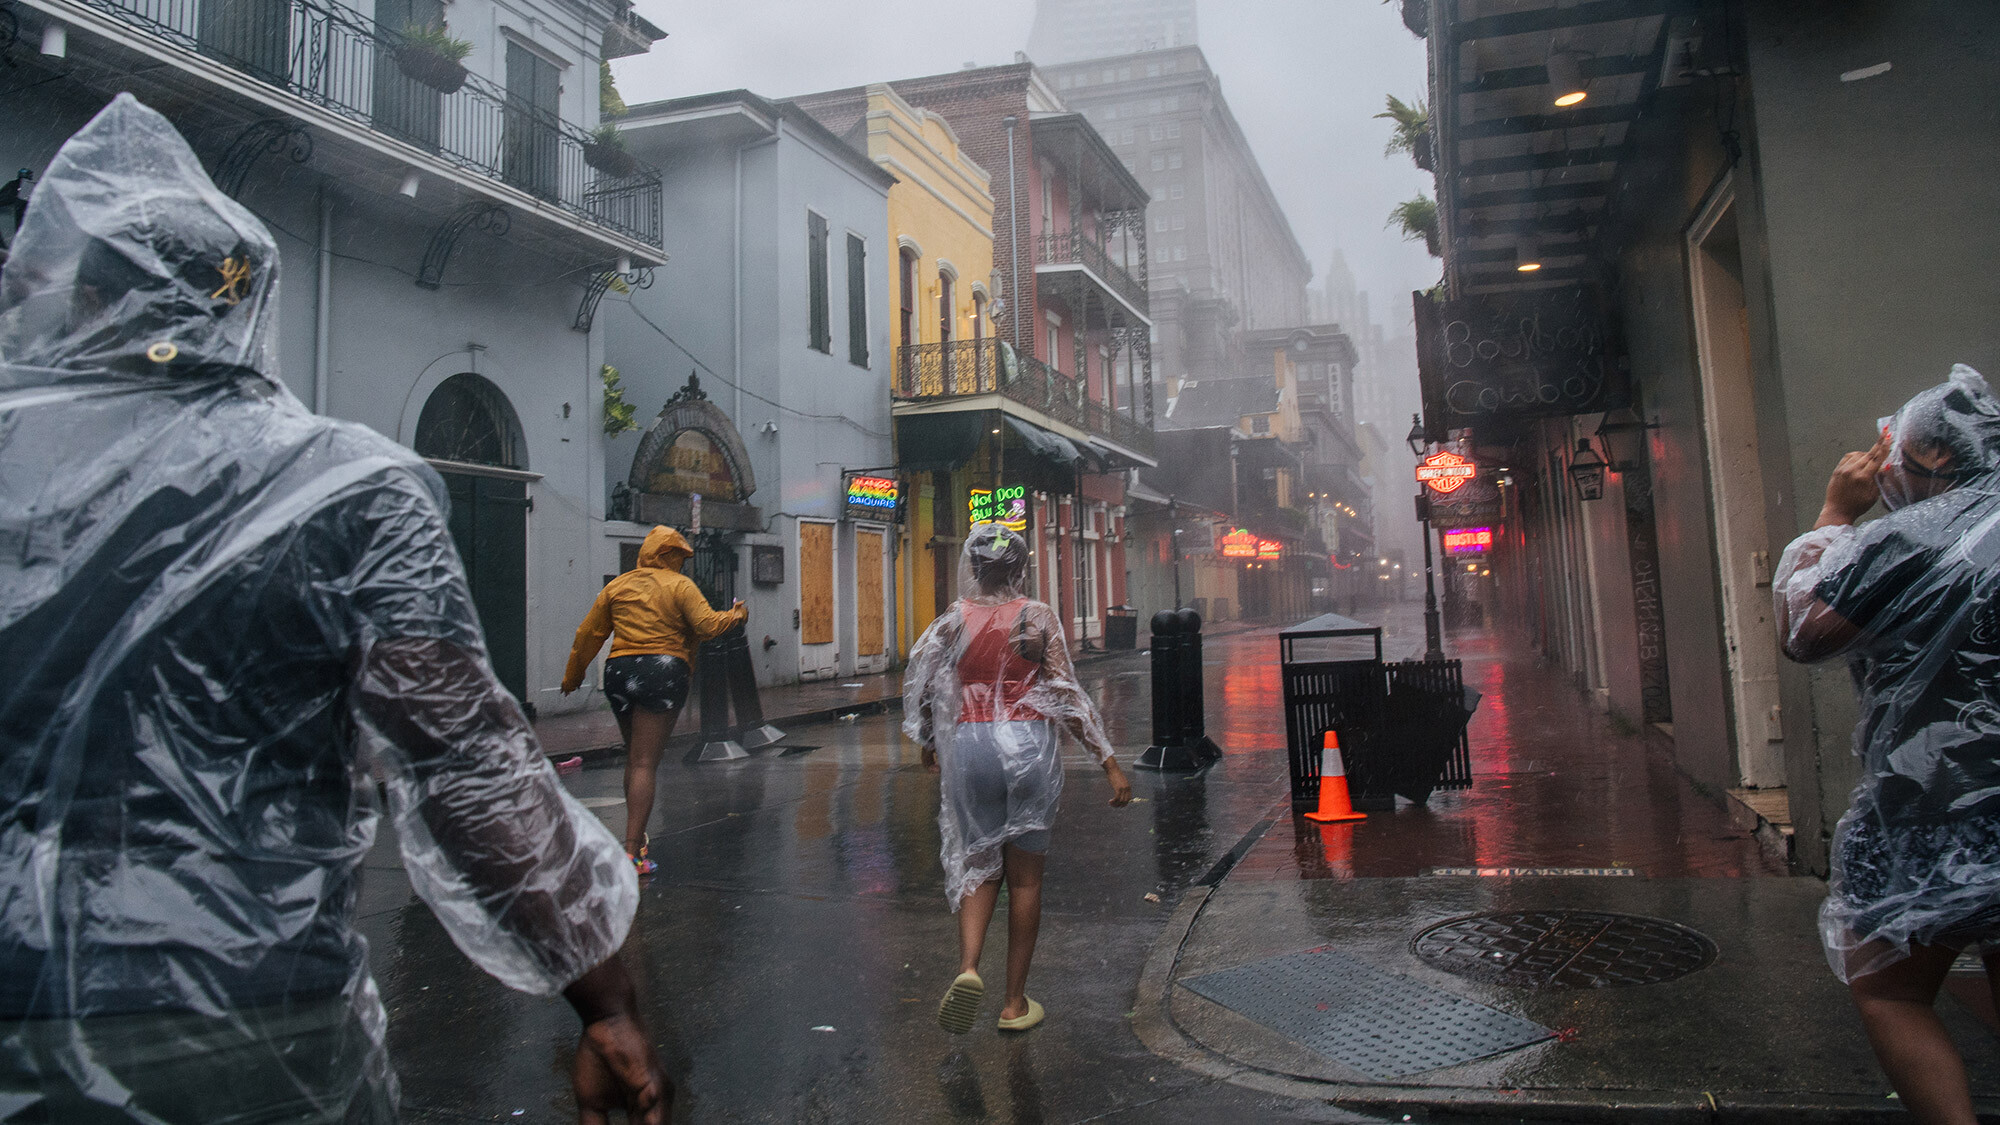 Webcams and social media apps are changing the way we experience hurricanes